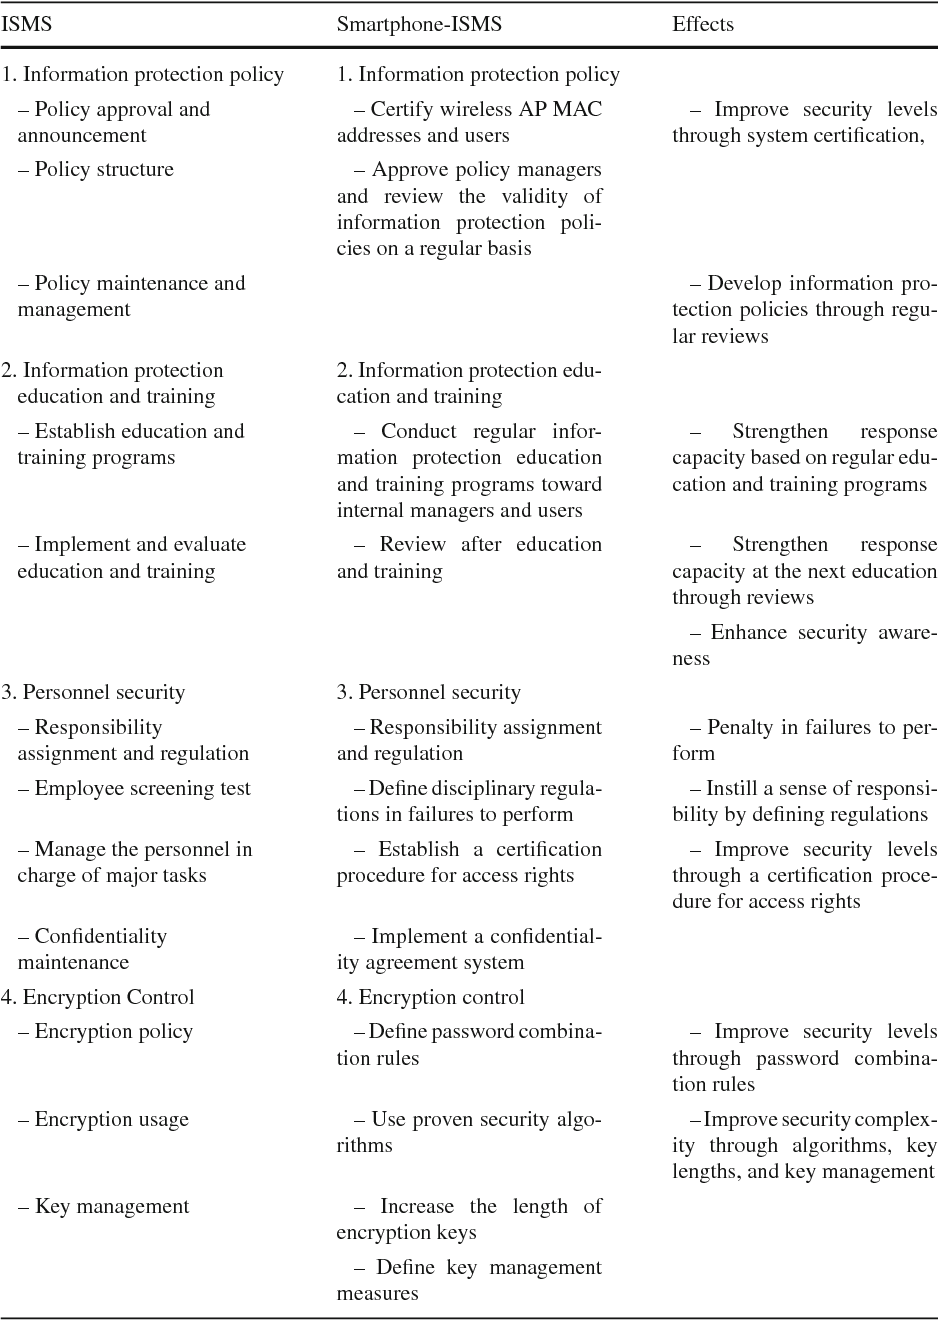 An Enhanced Smartphone Security Model Based On Information Security